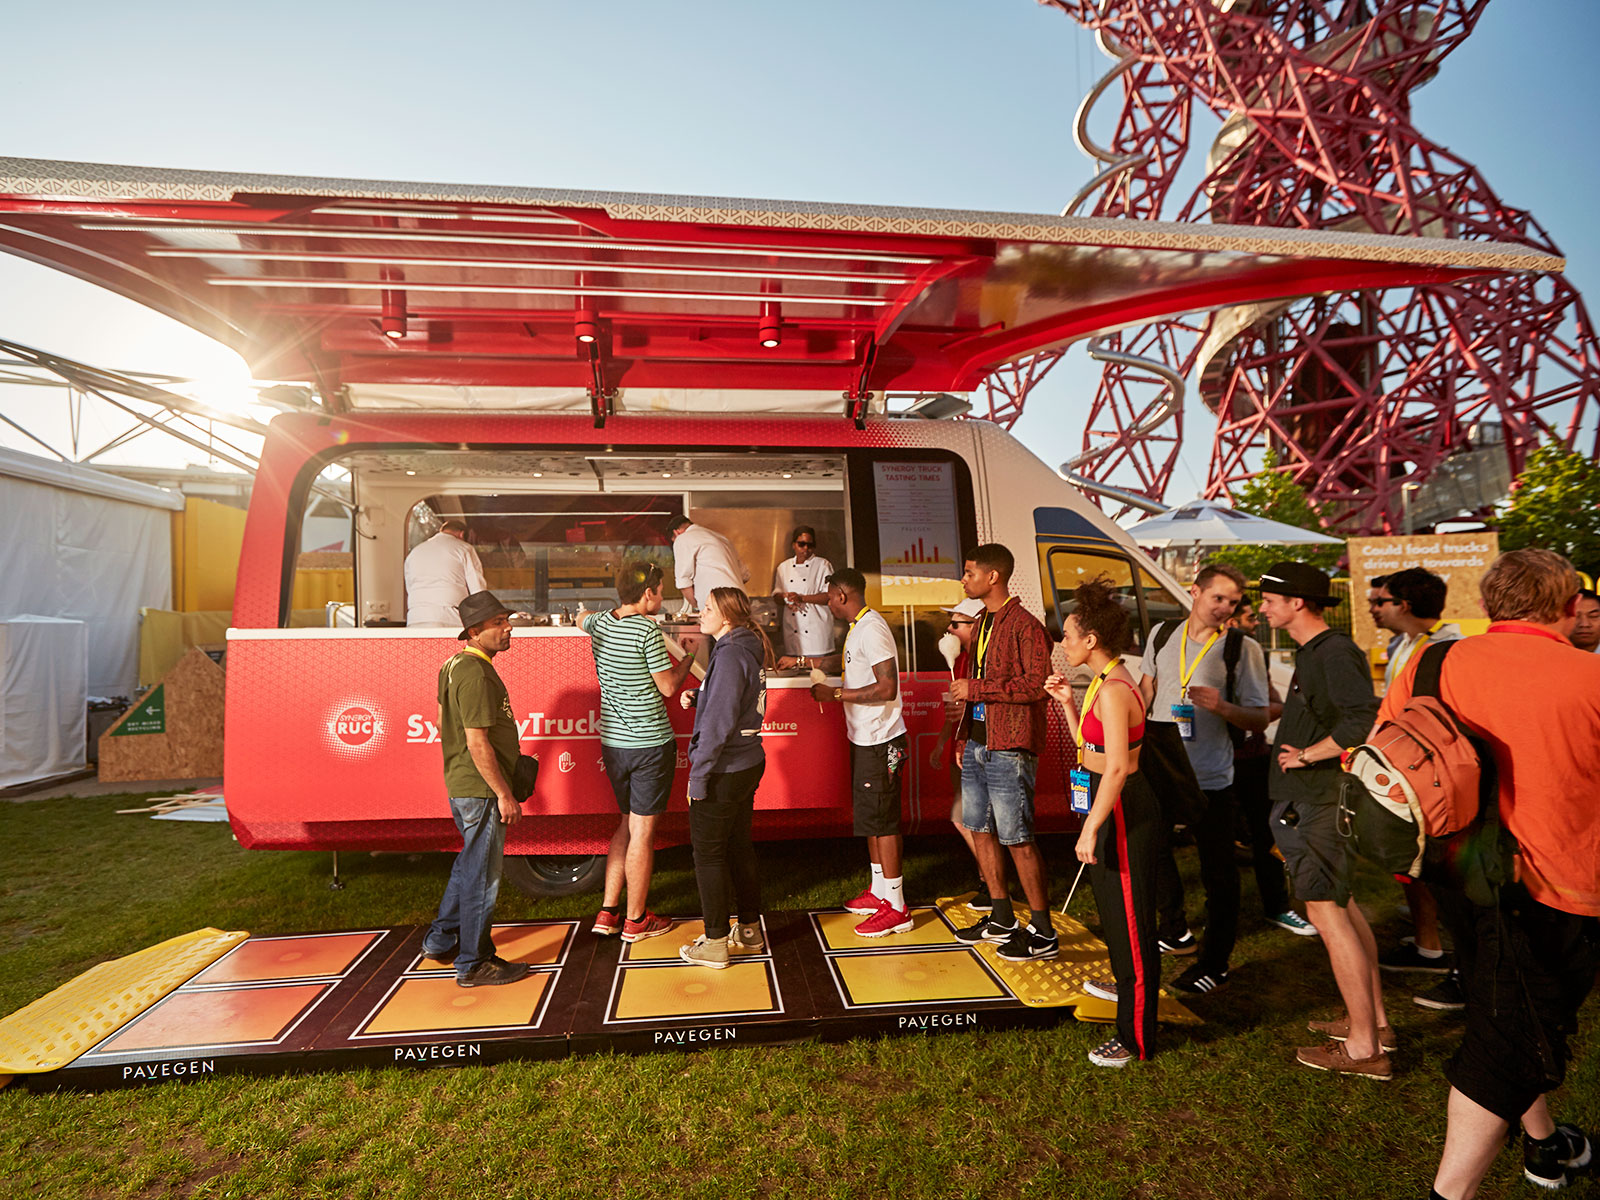 shell synergy food truck